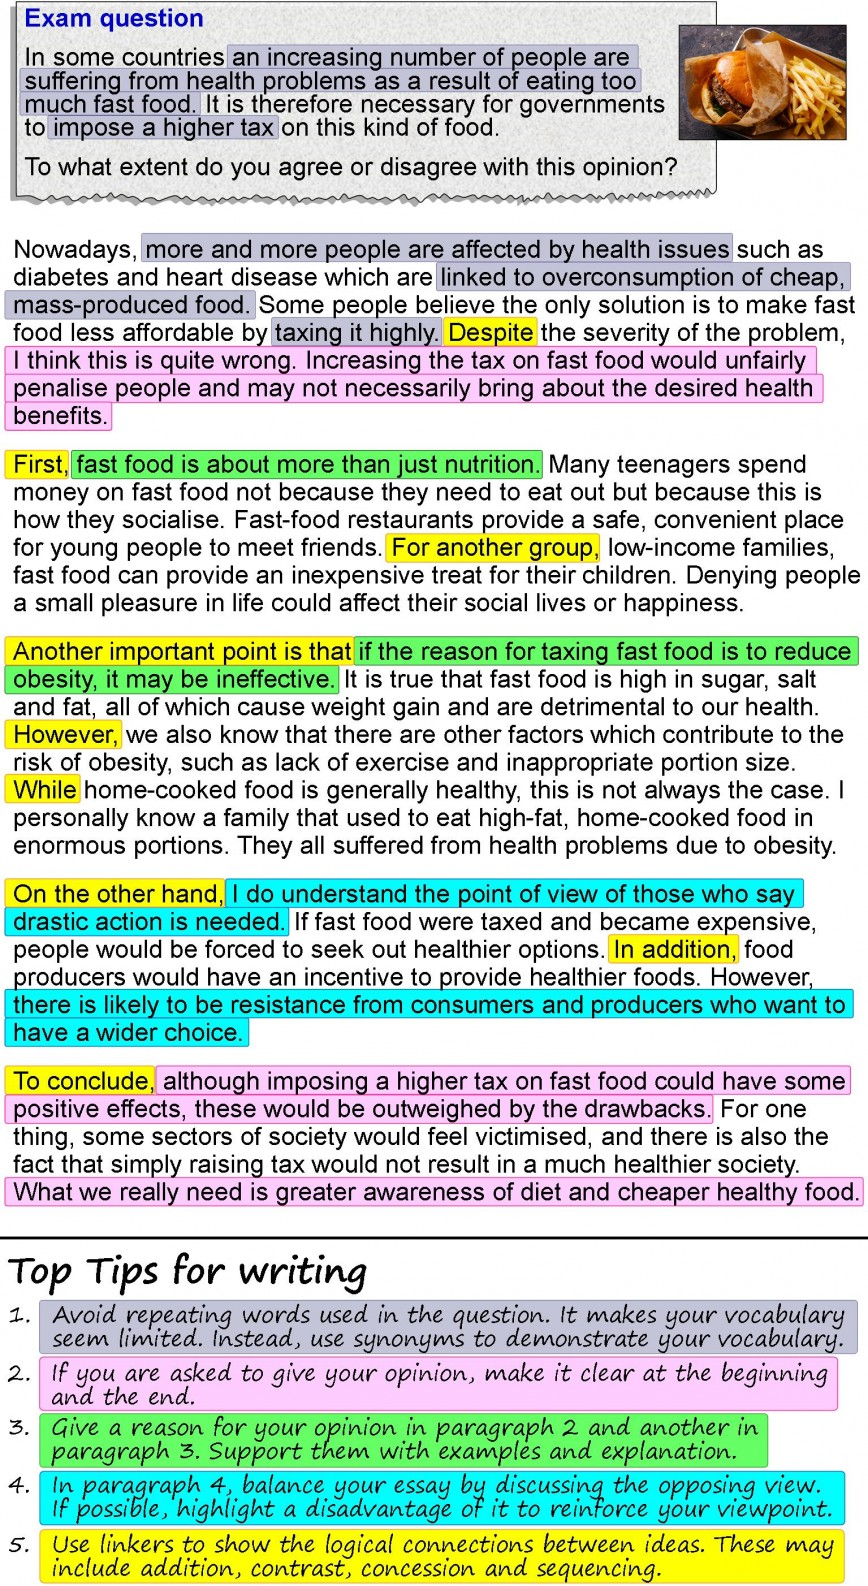 001 Opinion Essay About Fast Food Example An 4 Unbelievable Short British Council 868